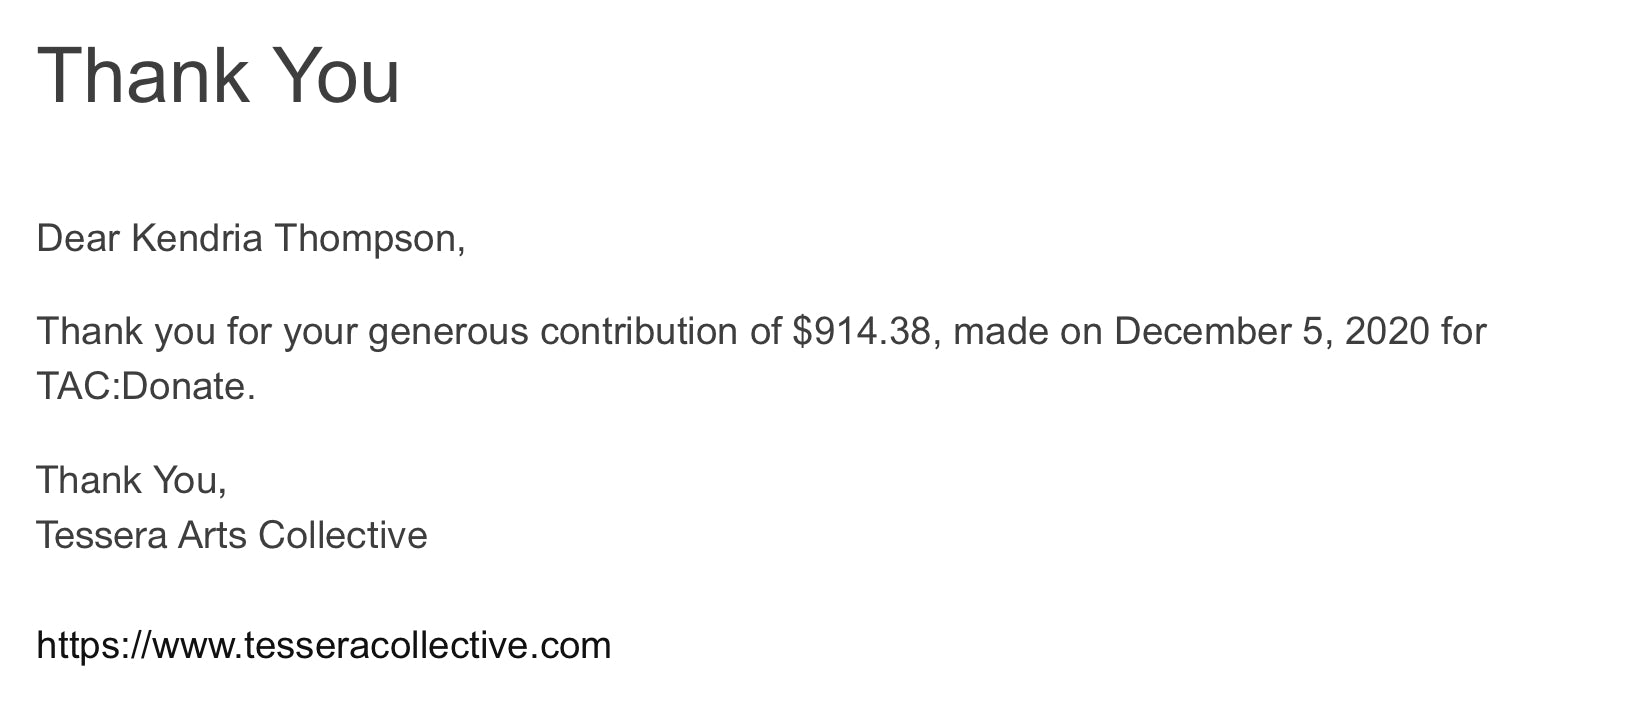 Tessera Arts Collective Donation receipt